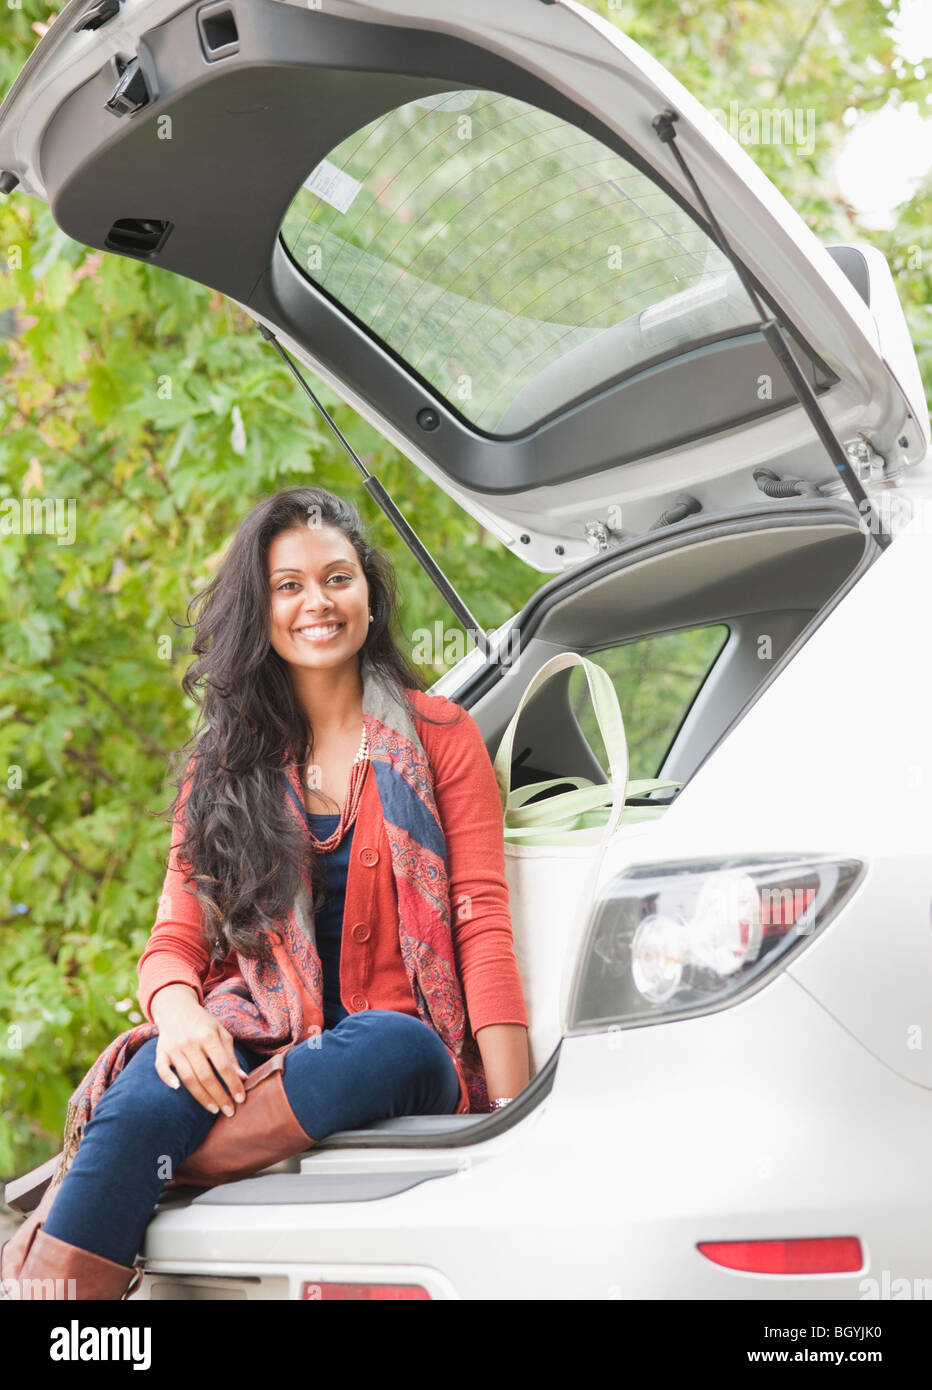 Woman sitting in trunk of car - Stock Image